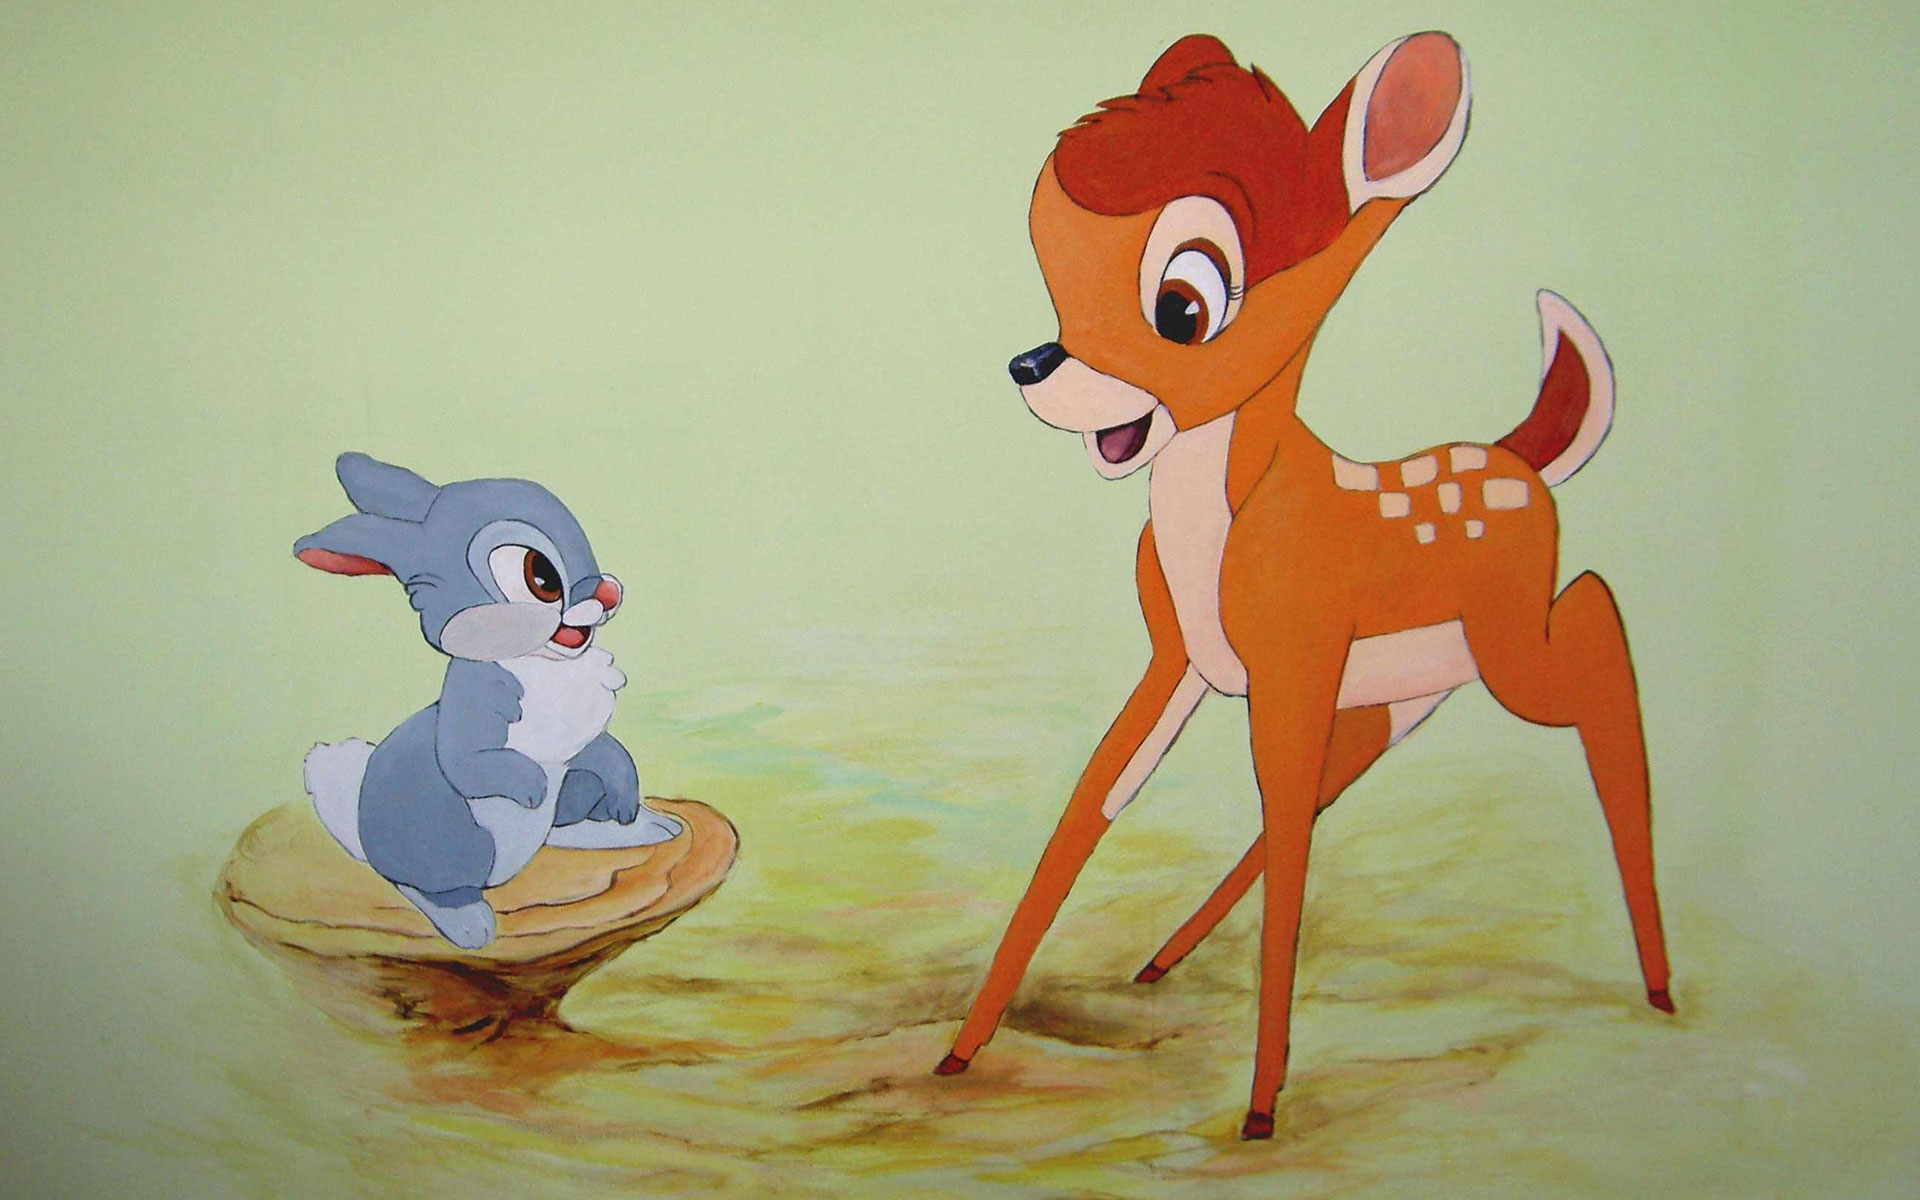 wallpaper thumper drawing bambi wallpapers cartoons 1920x1200